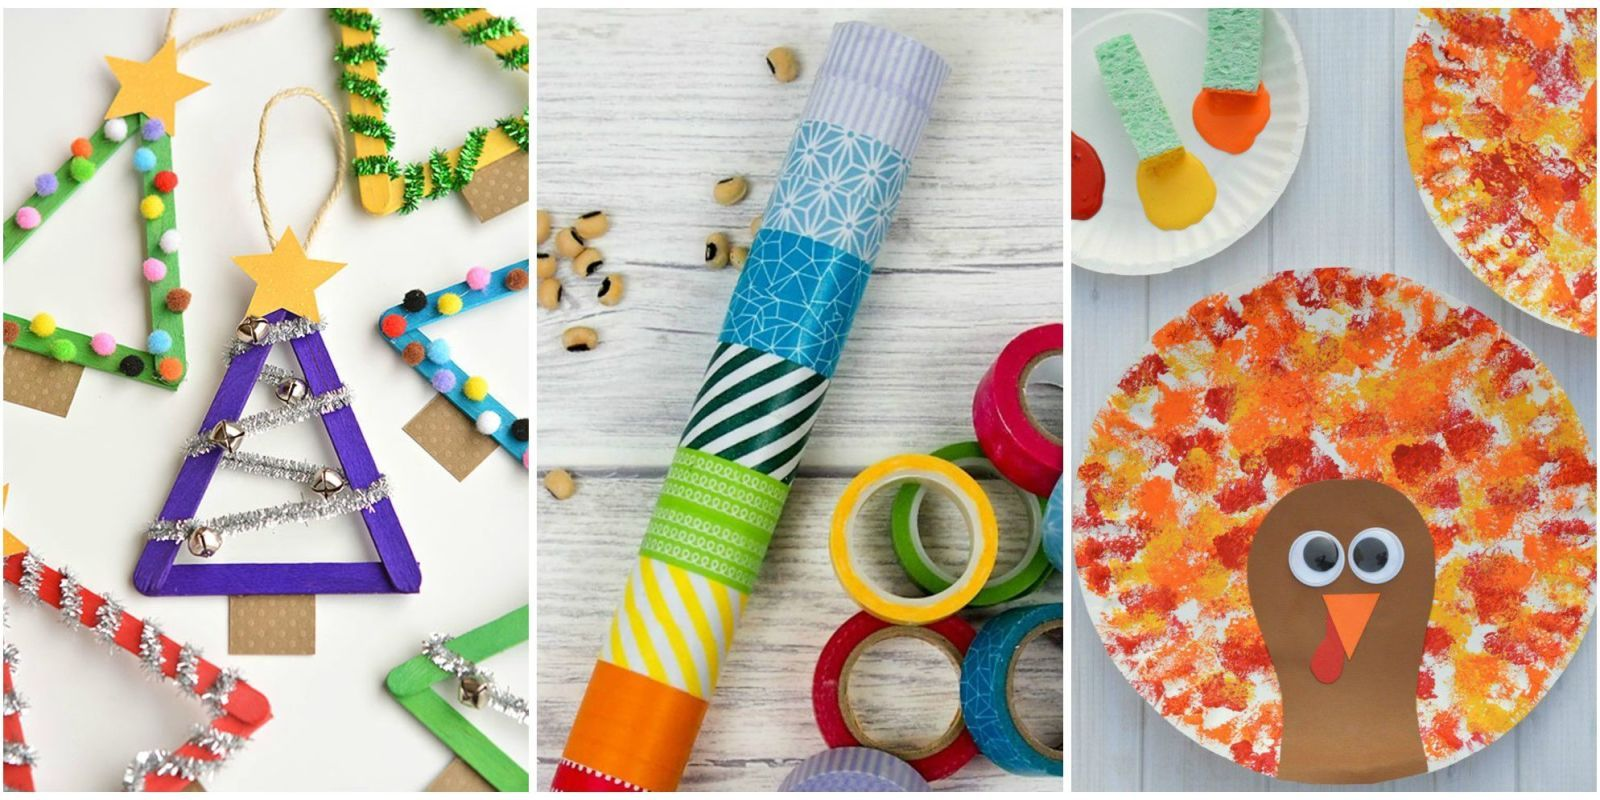 10 easy crafts for